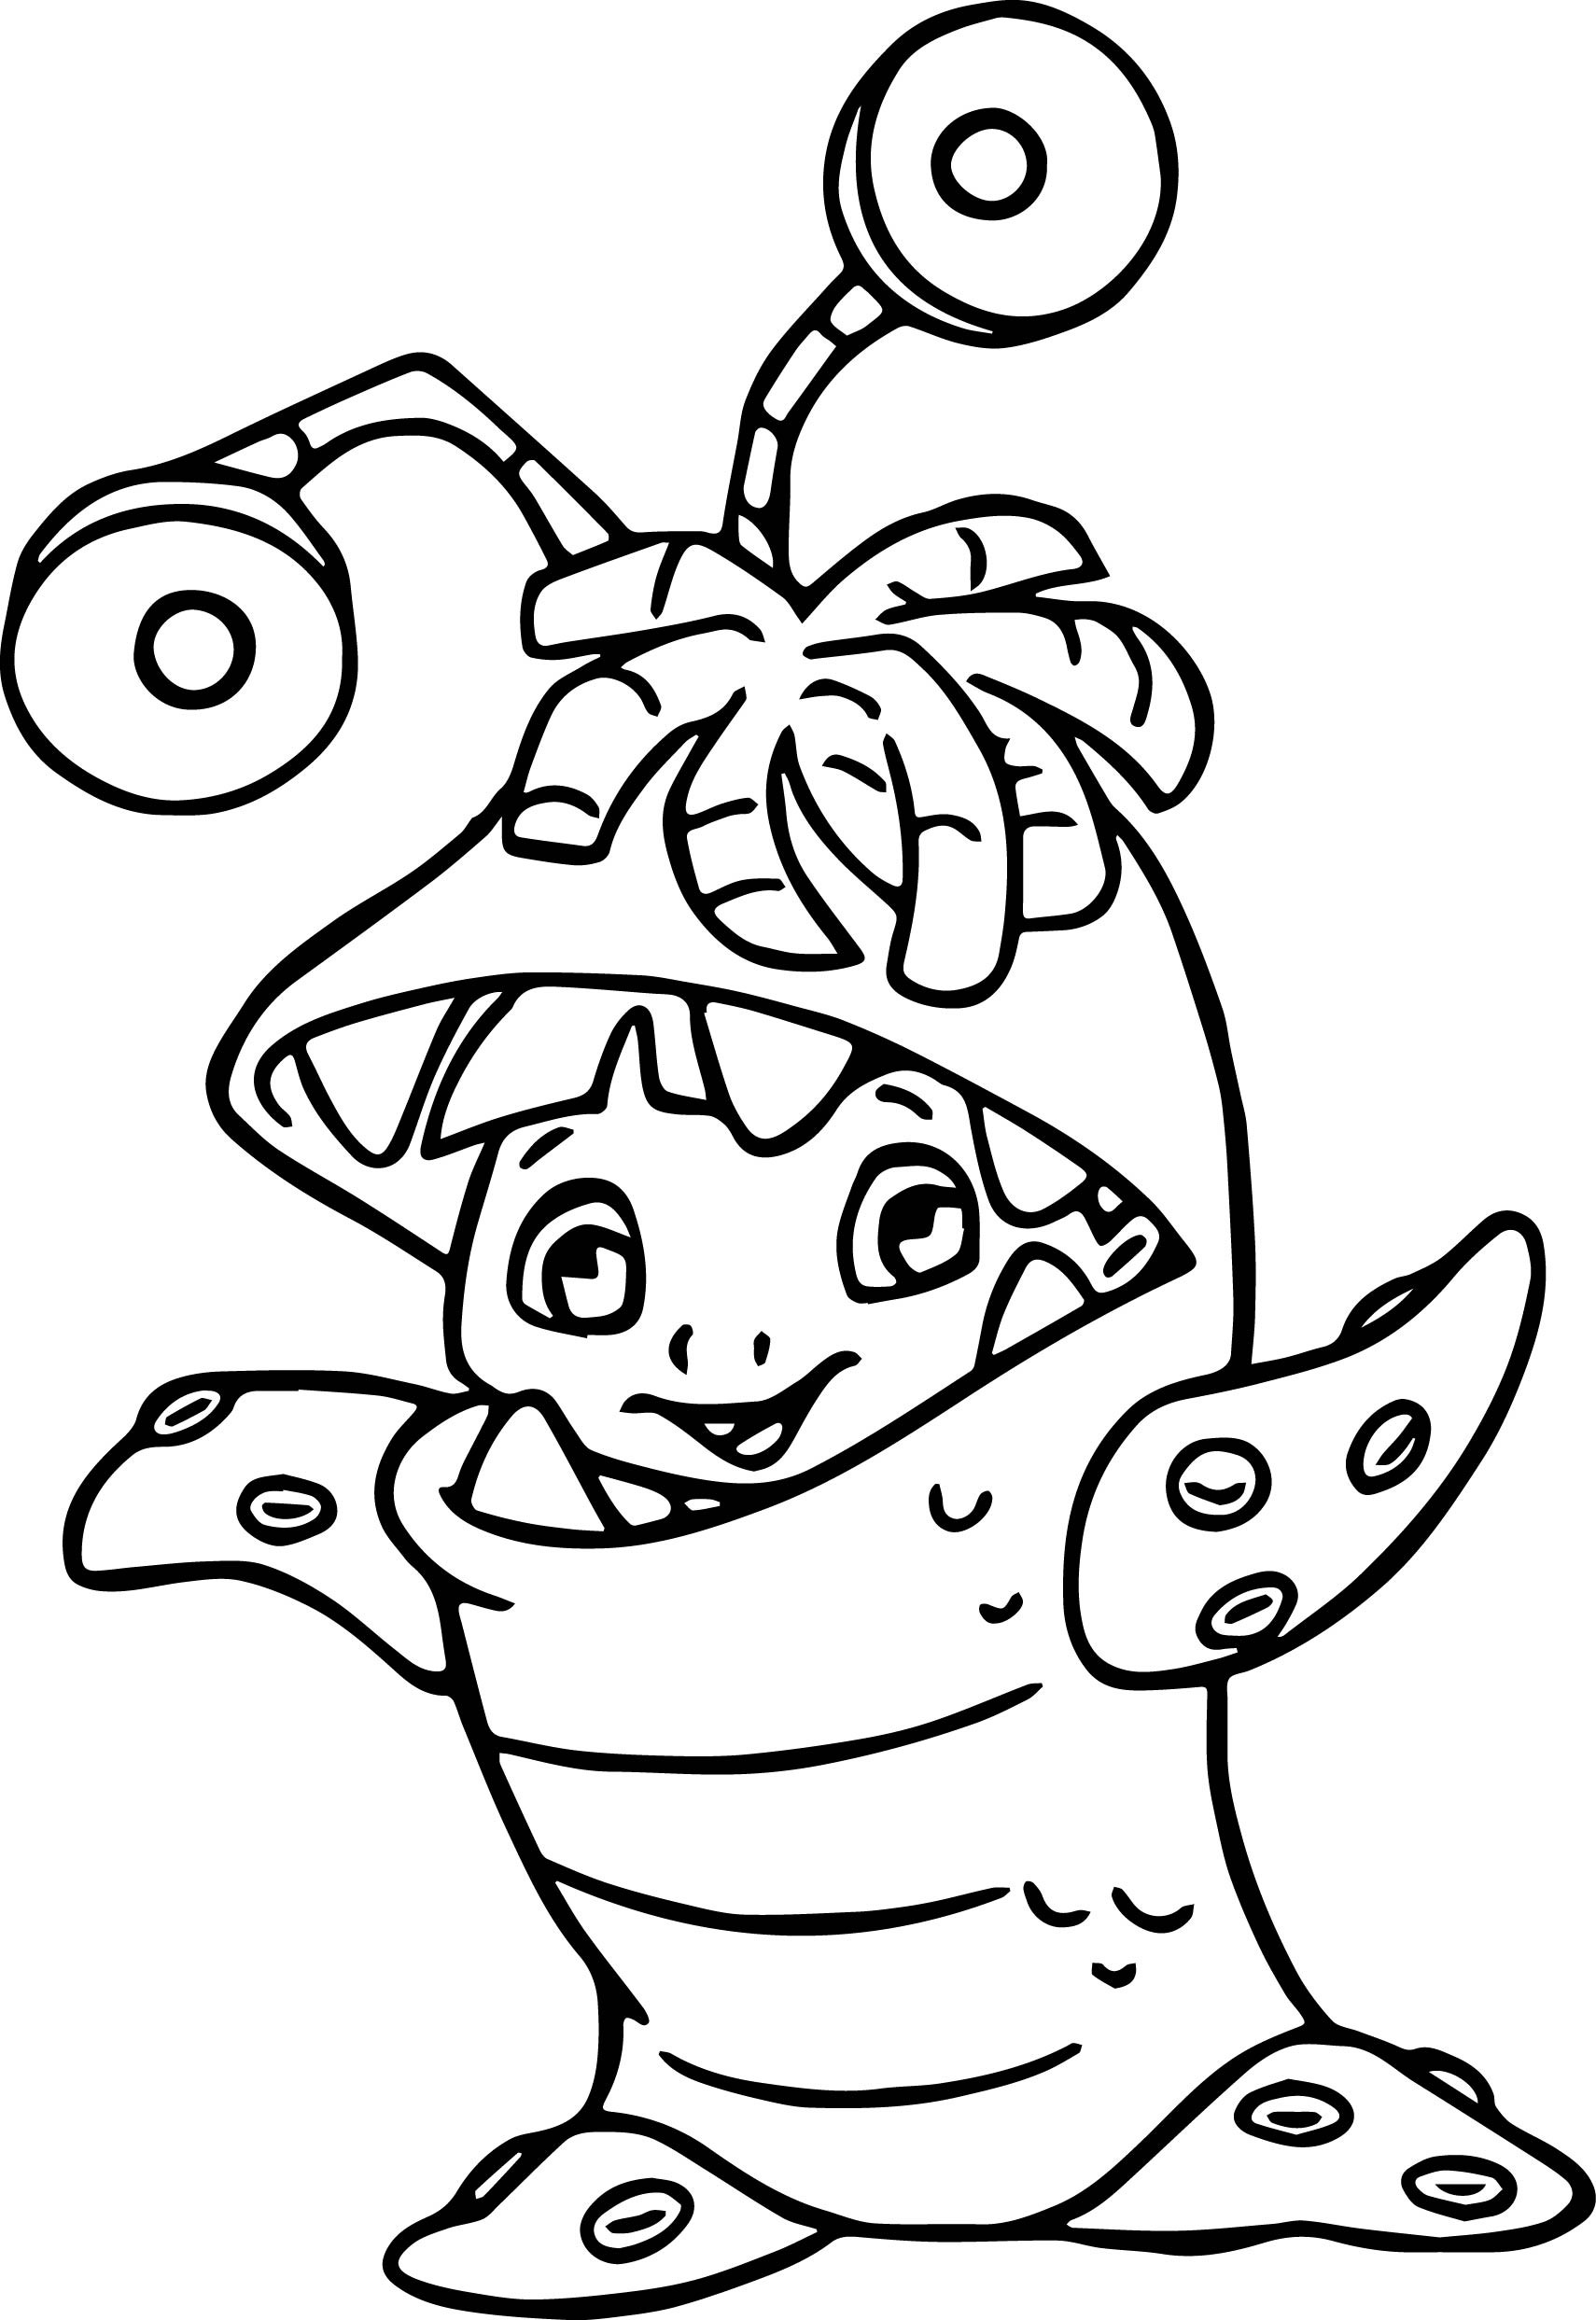 1710x2486 Monster Inc Characters Coloring Pages Awesome Disney Monsters Inc